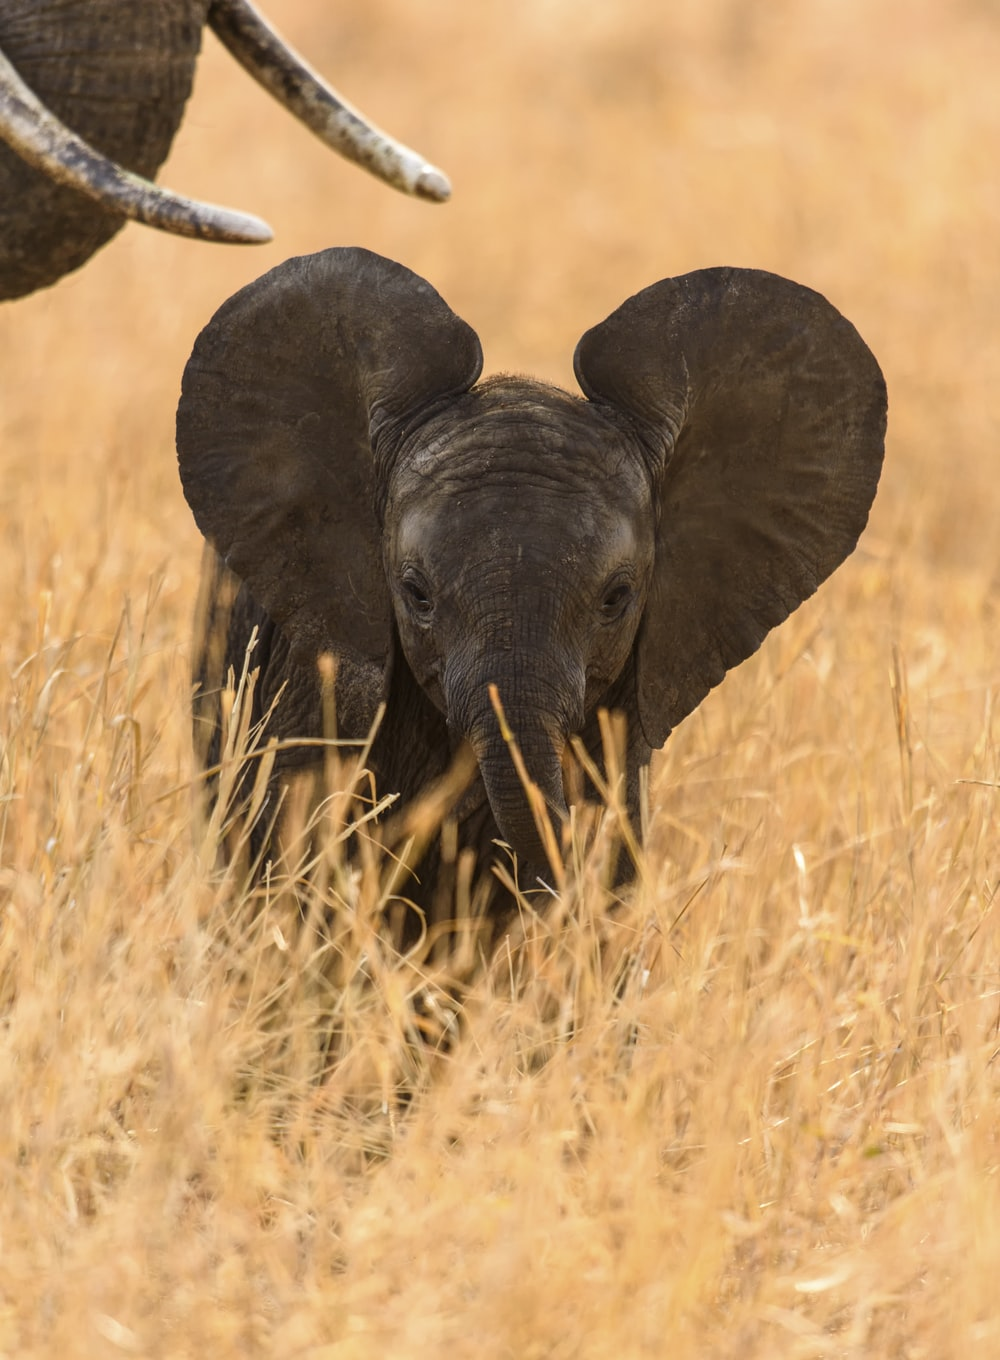 elephant on brown grass field during daytime